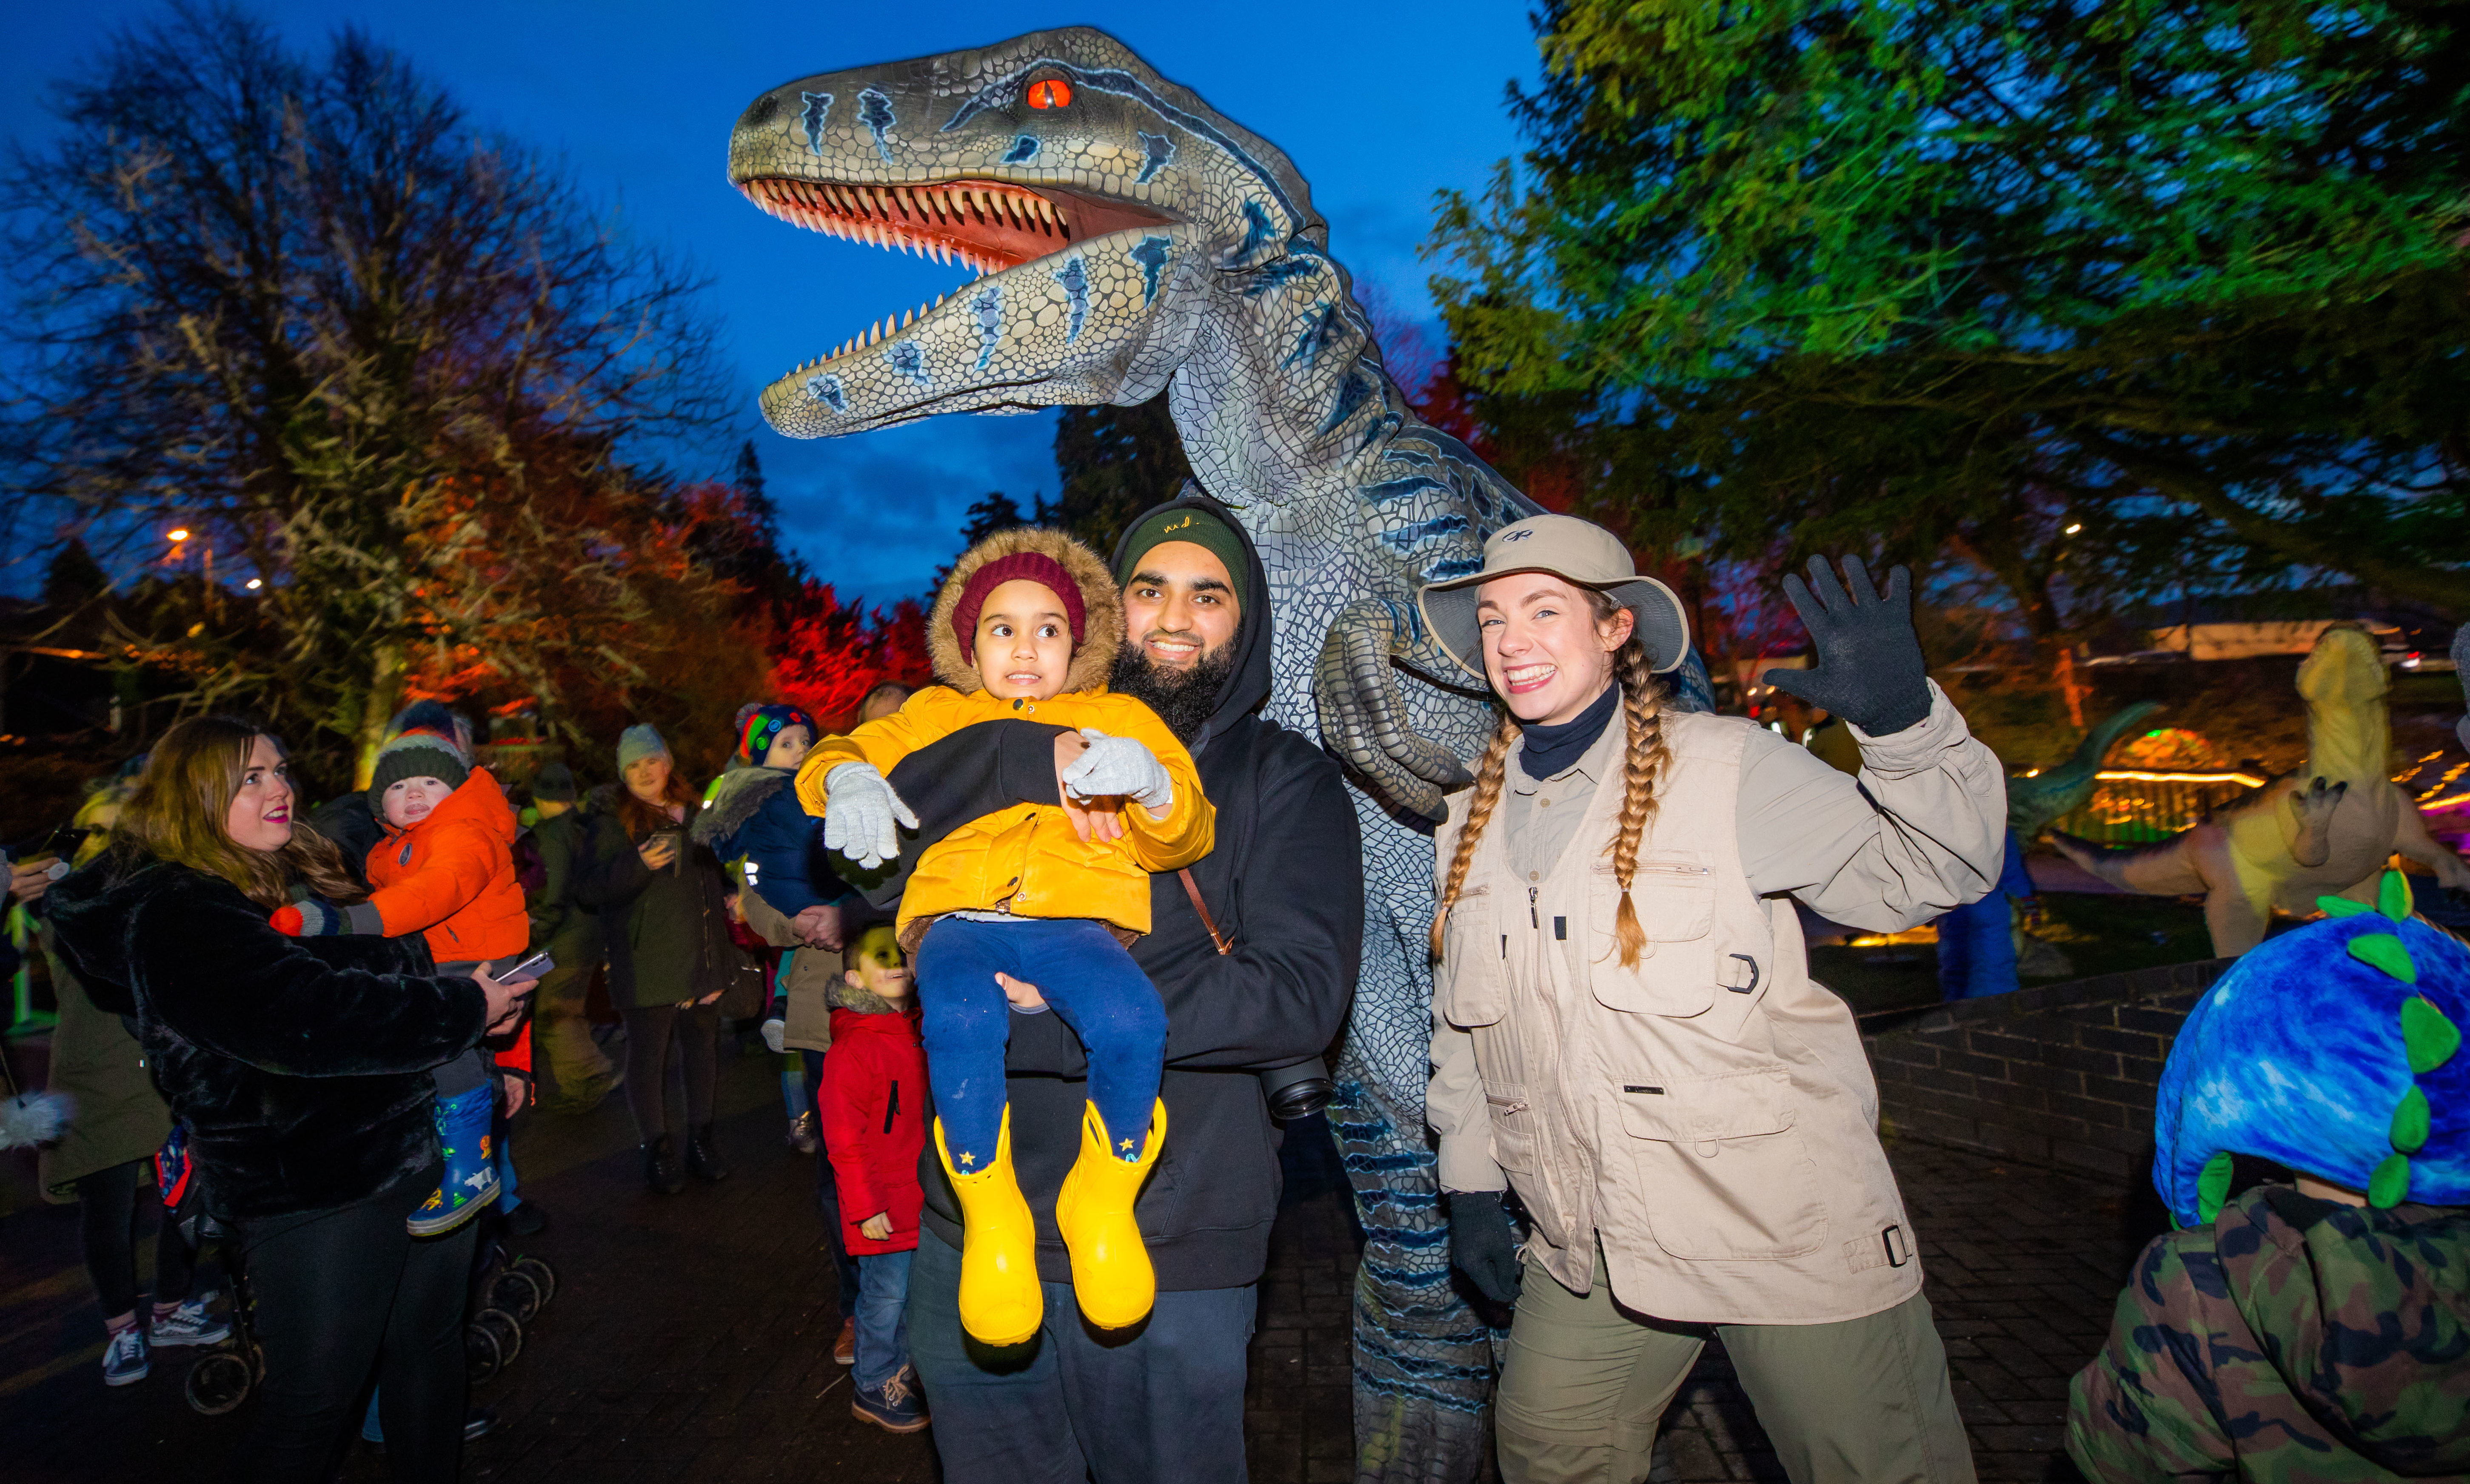 Ifran Ali and daughter Saarah Ali (aged 3, correct spelling) from Perth get up close to one of the dinosaurs Ritchie the Raptor alongside Ranger Georga.